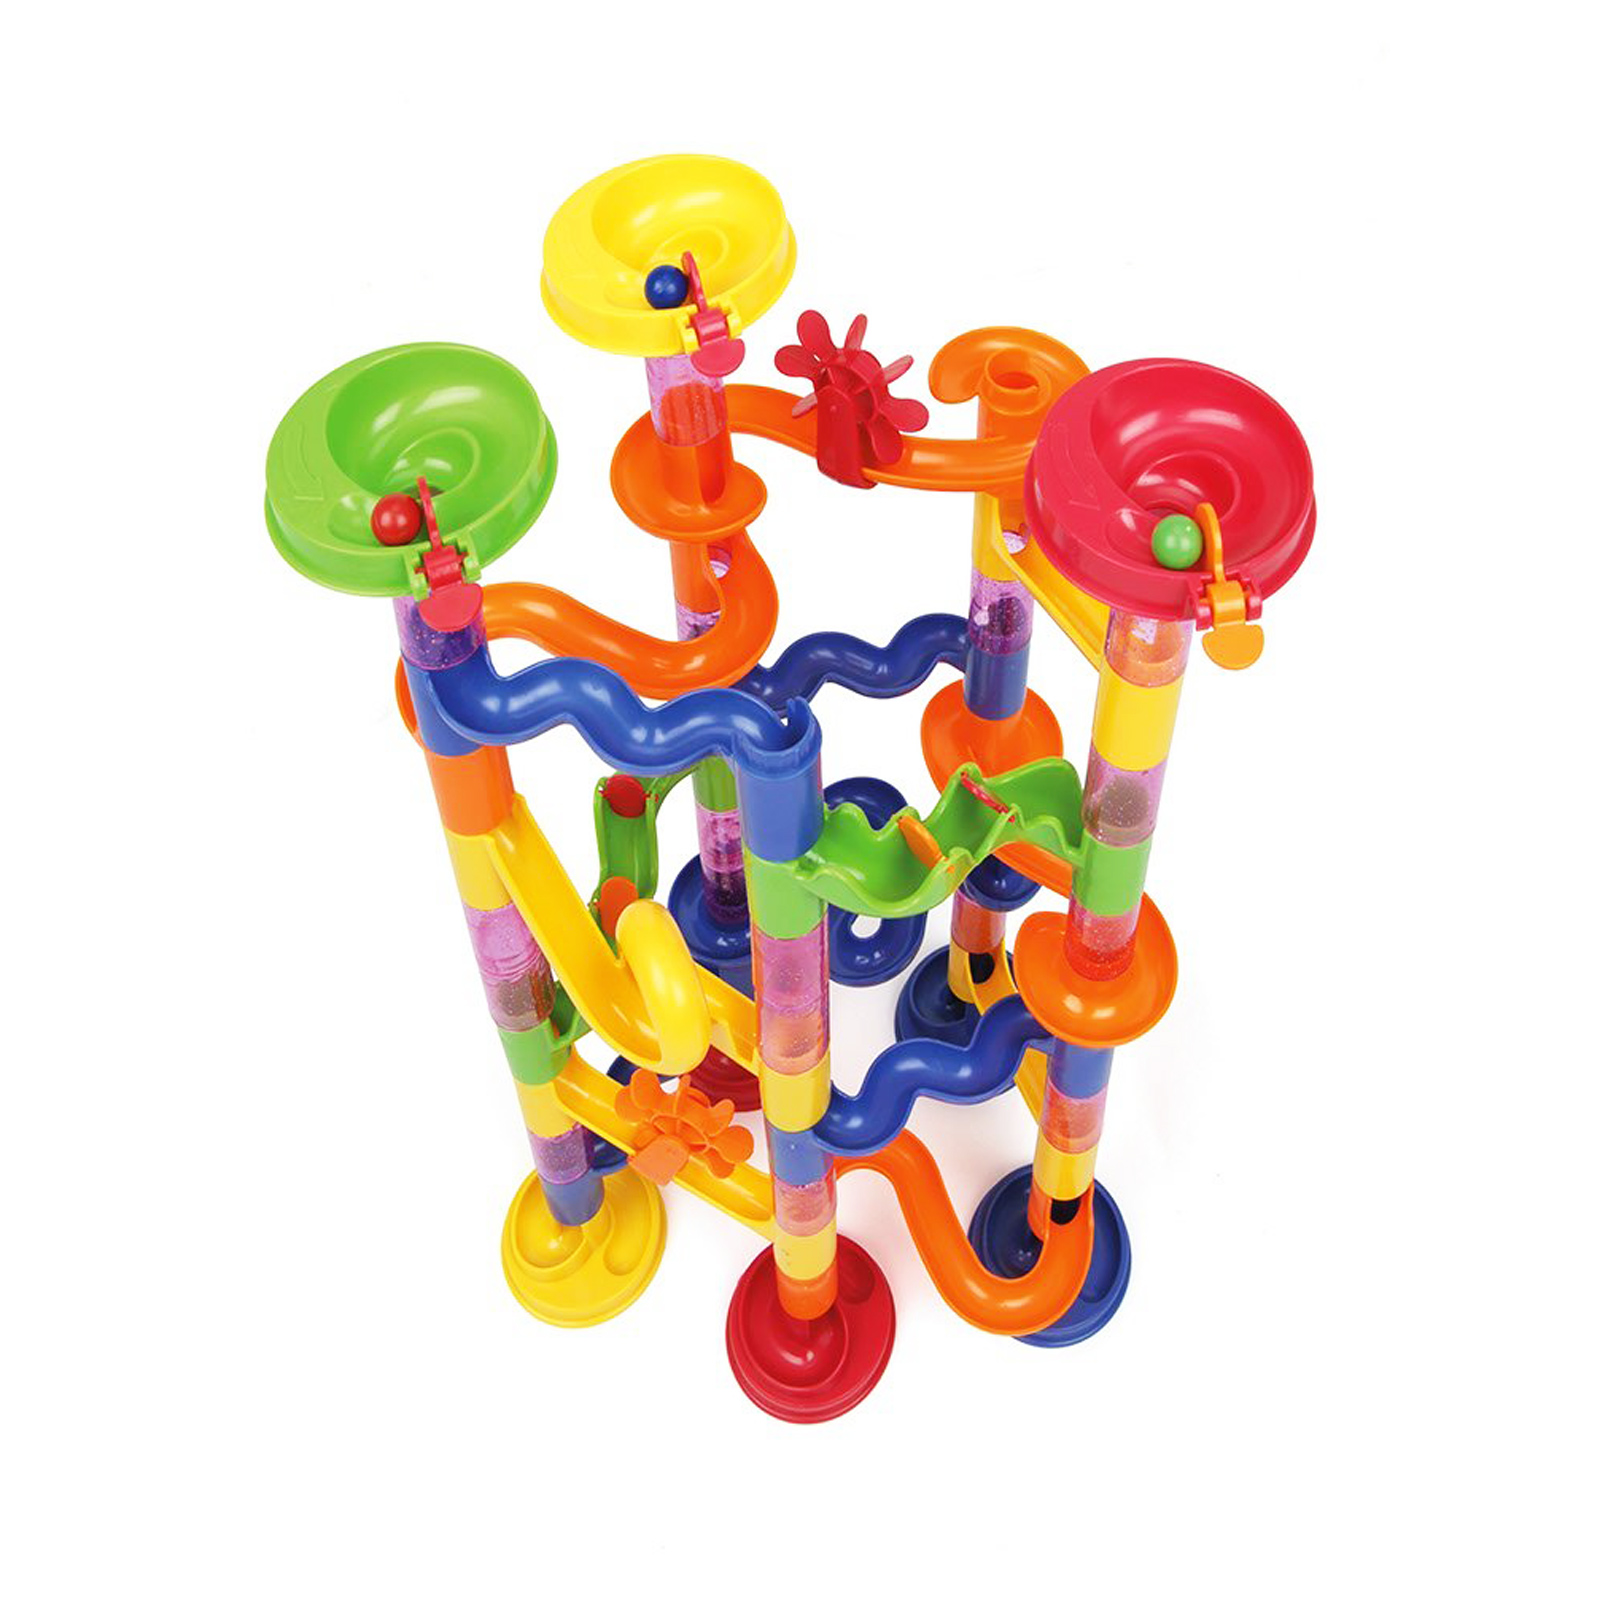 Toys For Marbles : Toyrific deluxe pcs customisable toy marble run